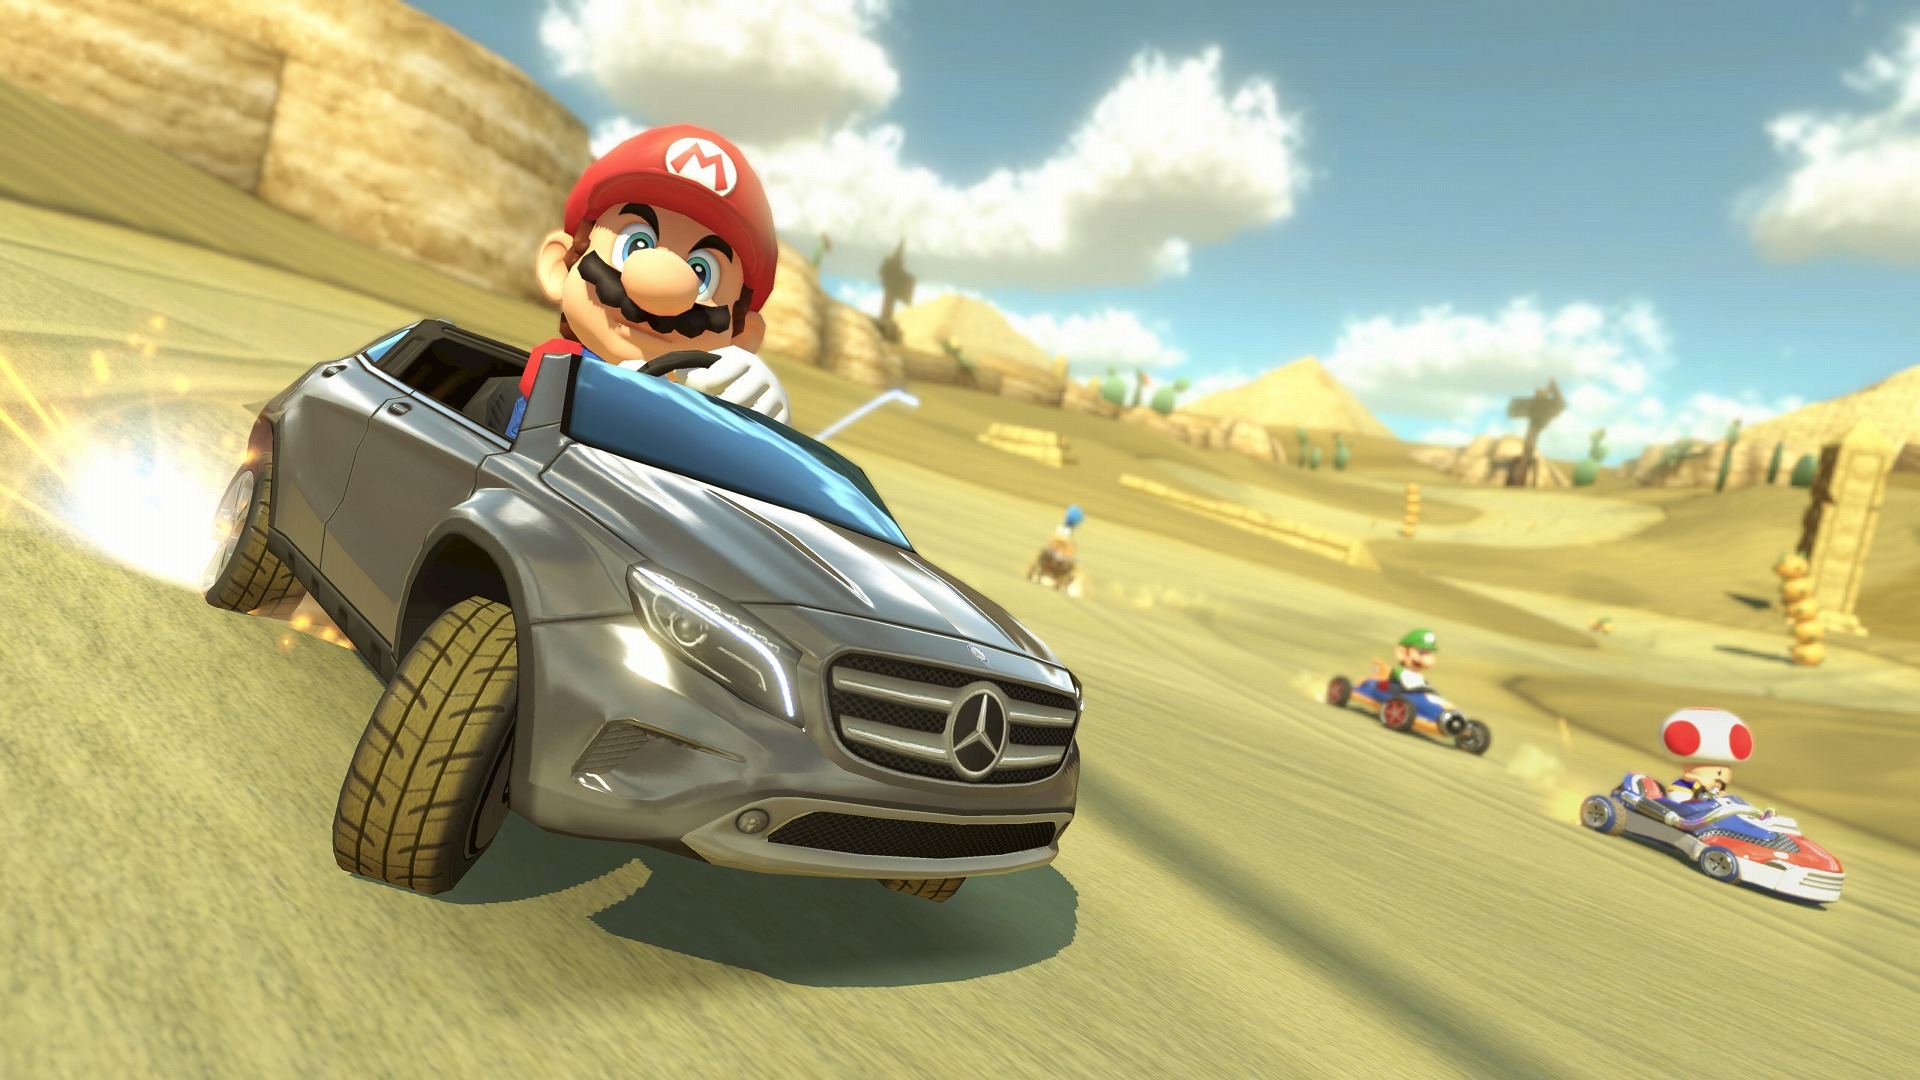 Mario Kart 8 DLC Announced - 2014-05-29 10:04:13